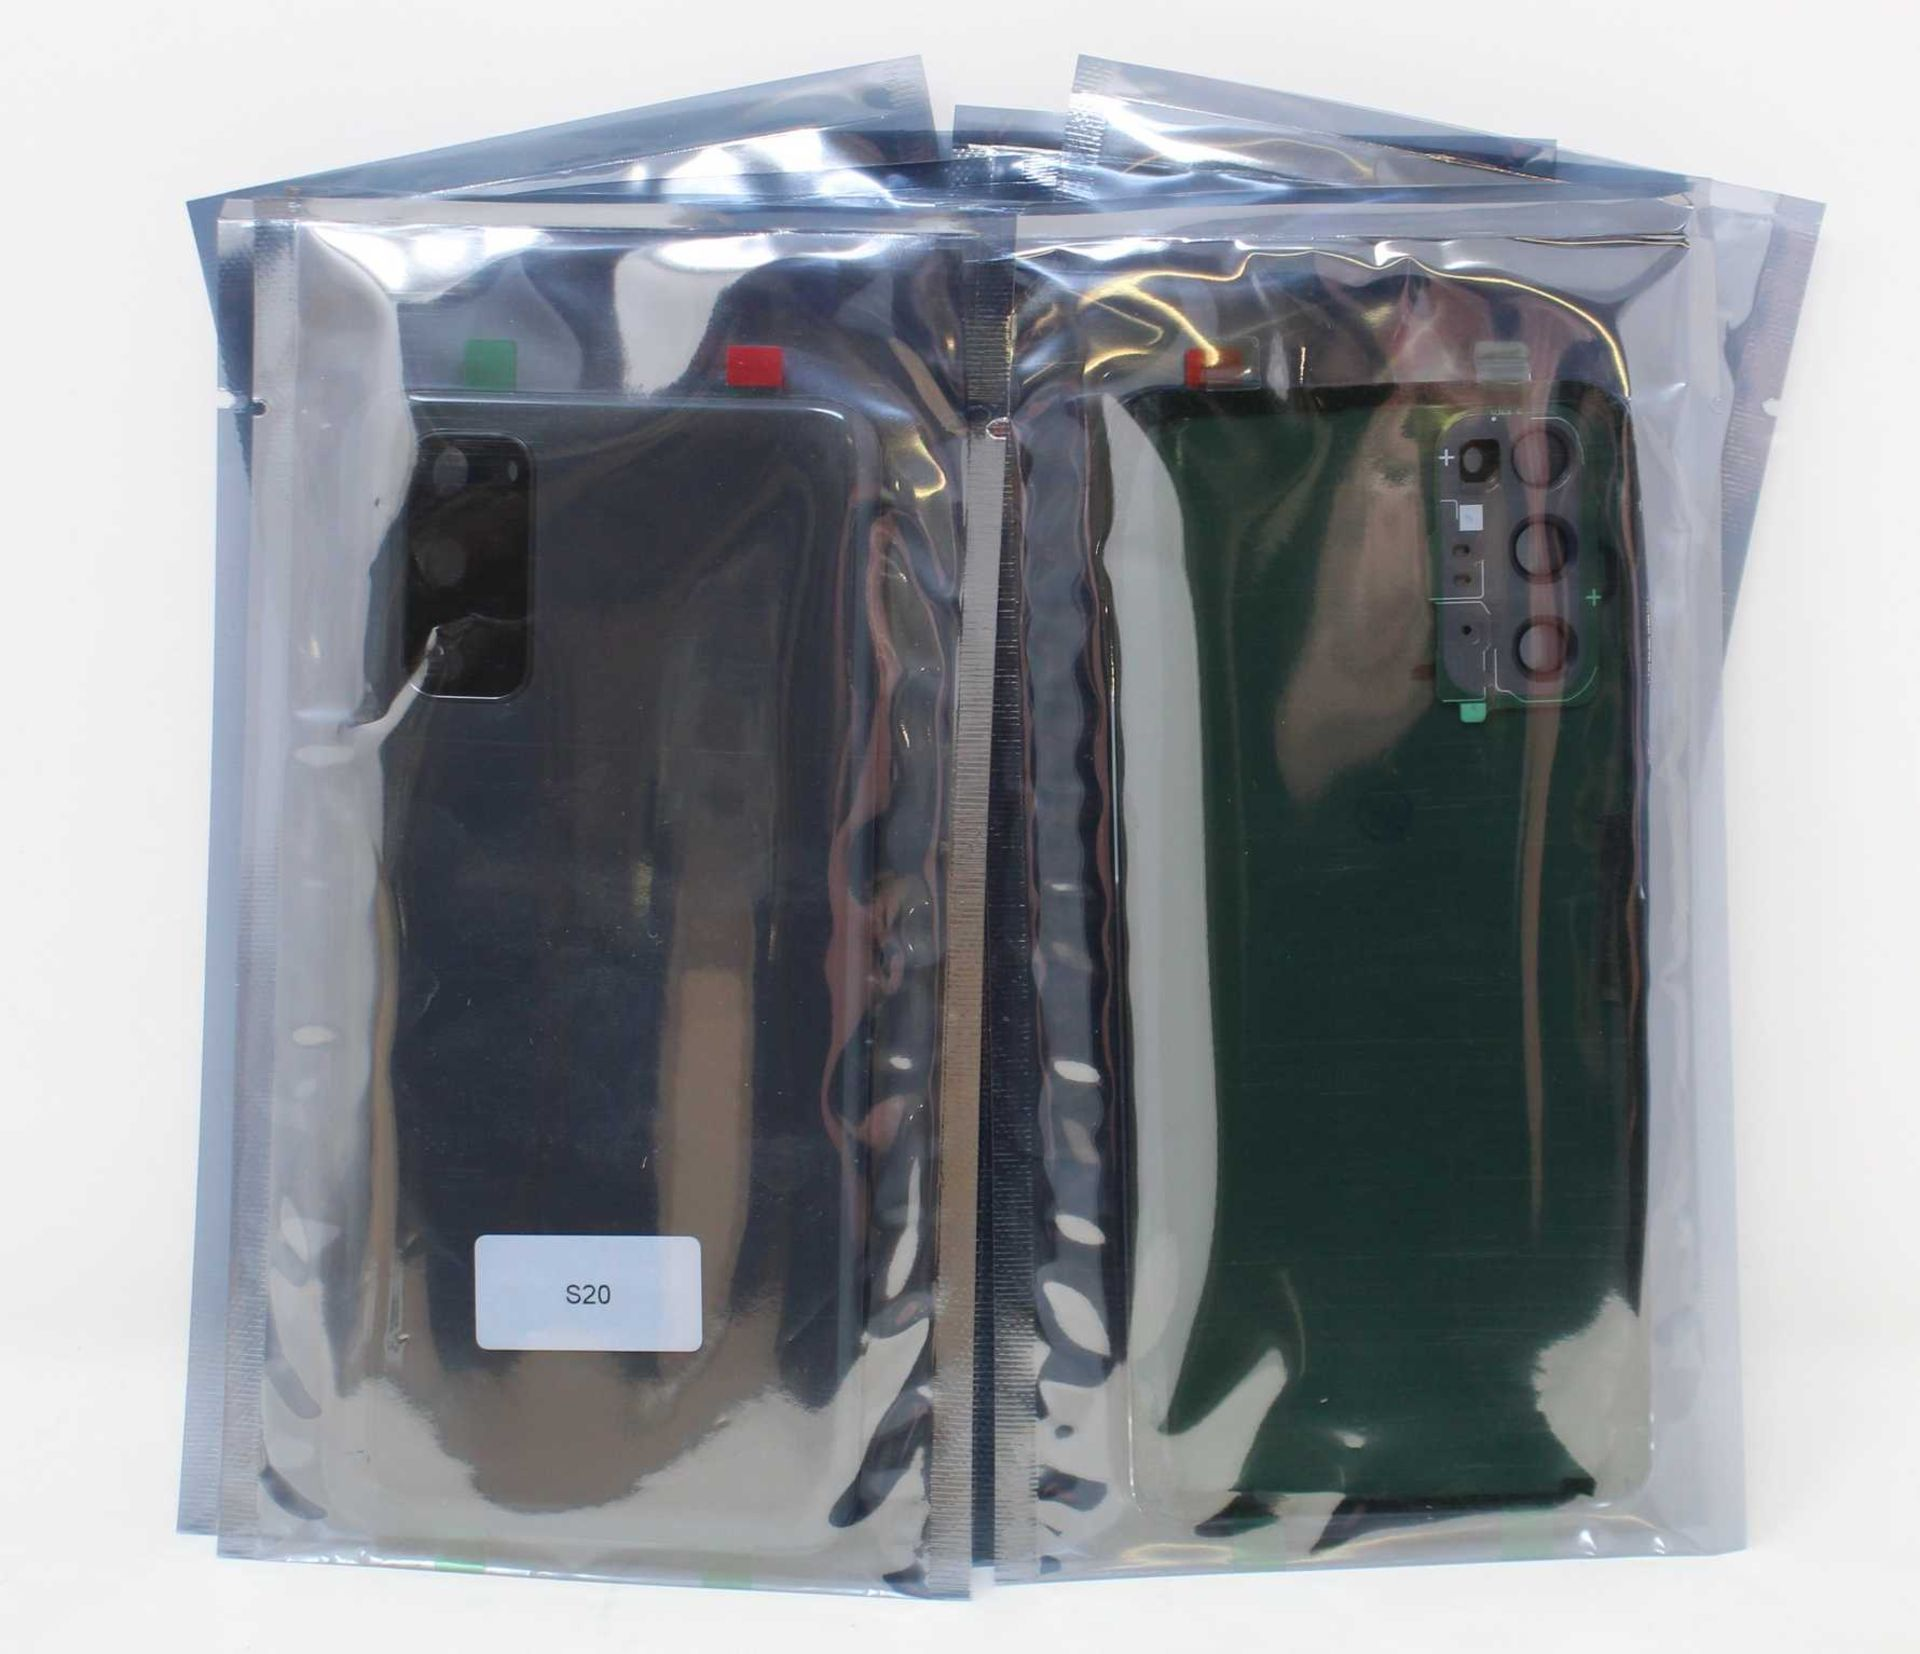 Ten as new QC Centre replacement back cameras for Samsung S10 Lite and two packs of five QC Centre